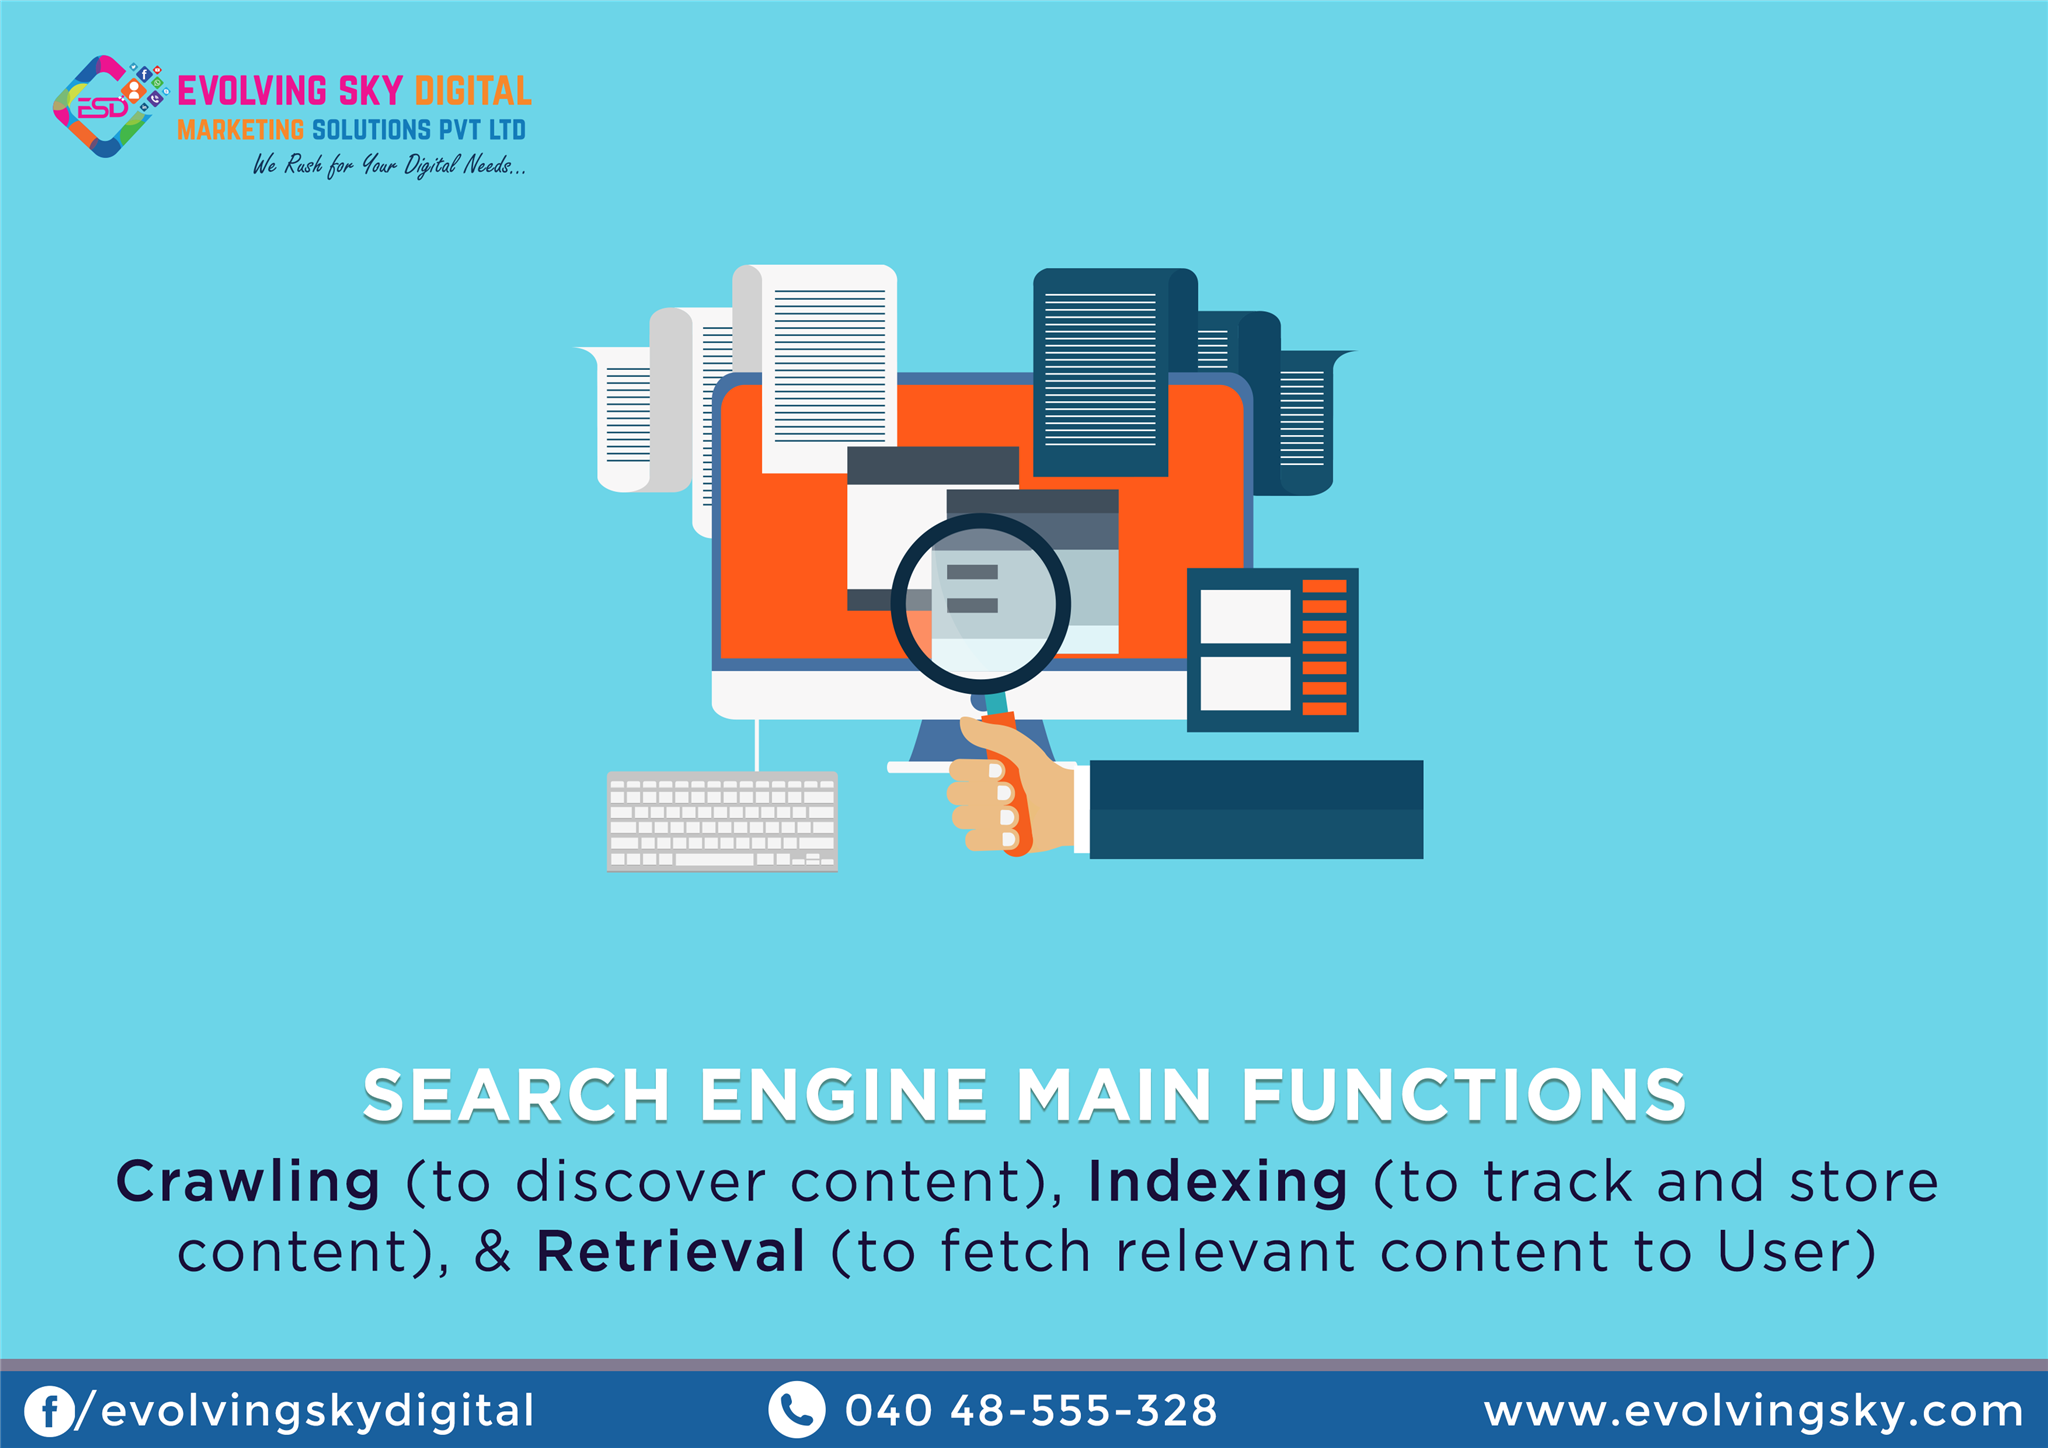 SearchEngine Functions Search Engine is a software